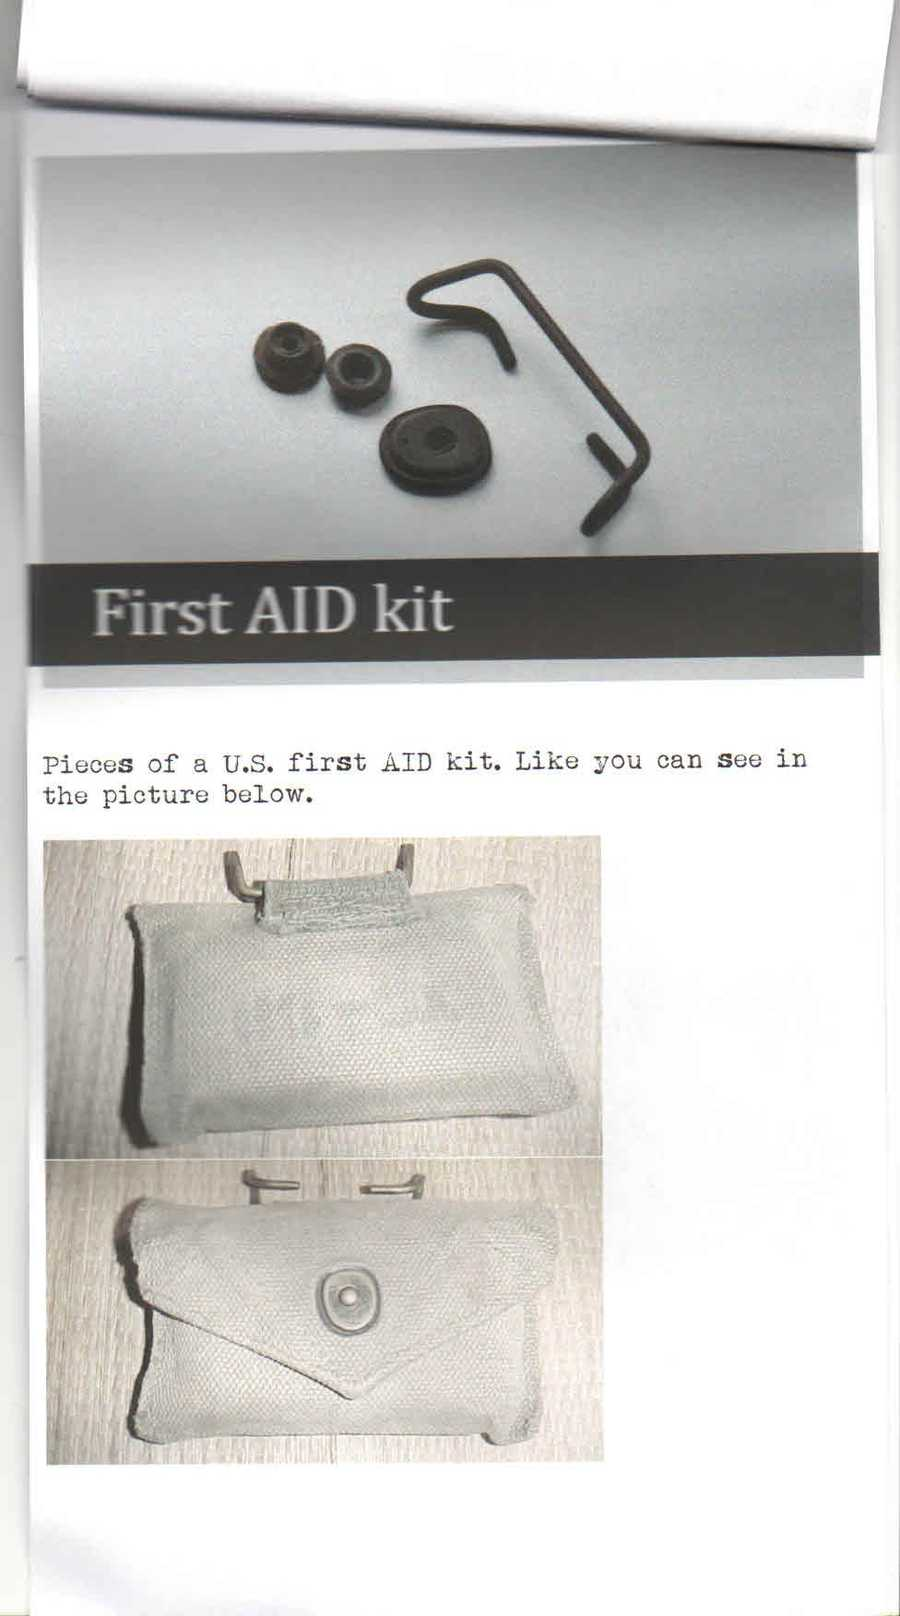 Allaert sent Clark's family detailed descriptions of the items in the shadow box. The top part of the photo is of pieces of a U.S. First Aid kit, like the one pictured at the bottom.